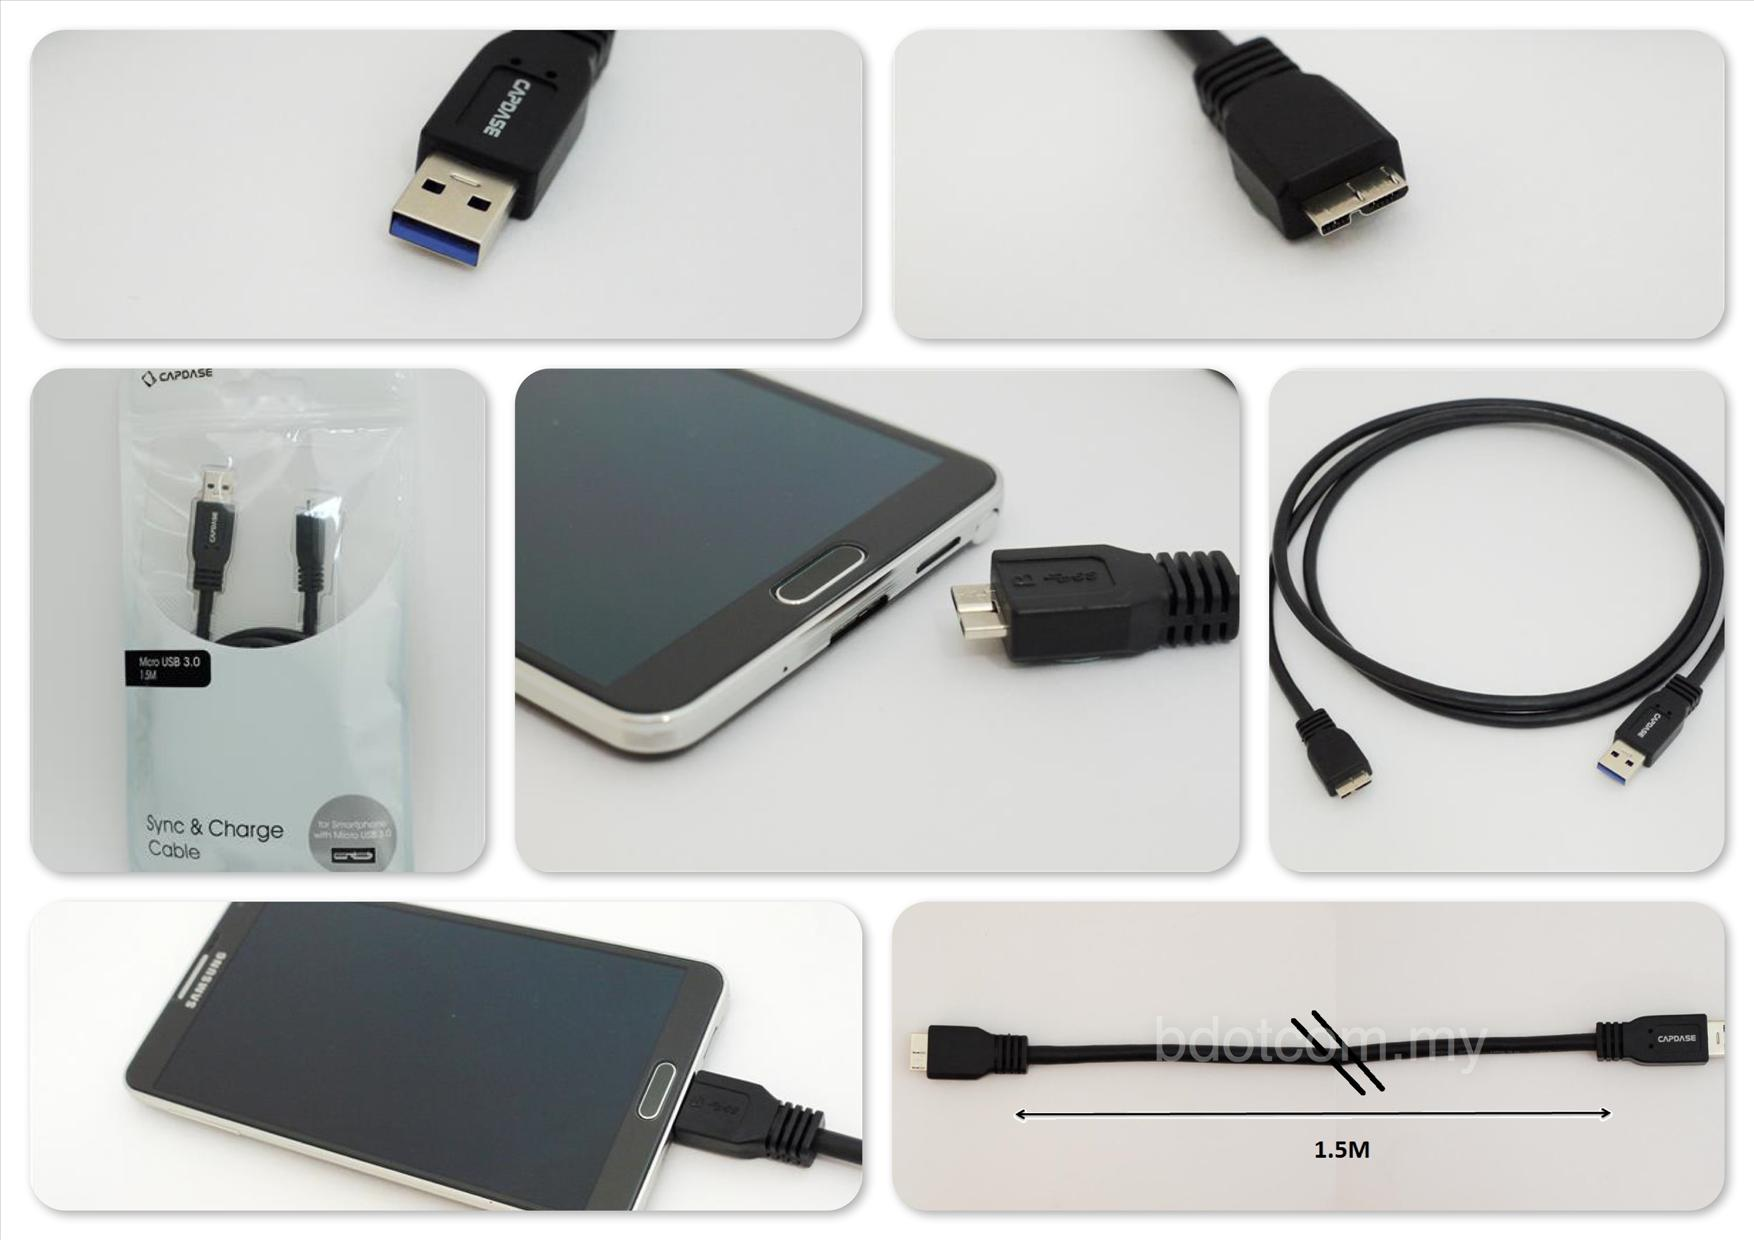 Bdotcom = Samsung Galaxy Note 3 Capdase Sync Charge Cable MicroUSB 3.0